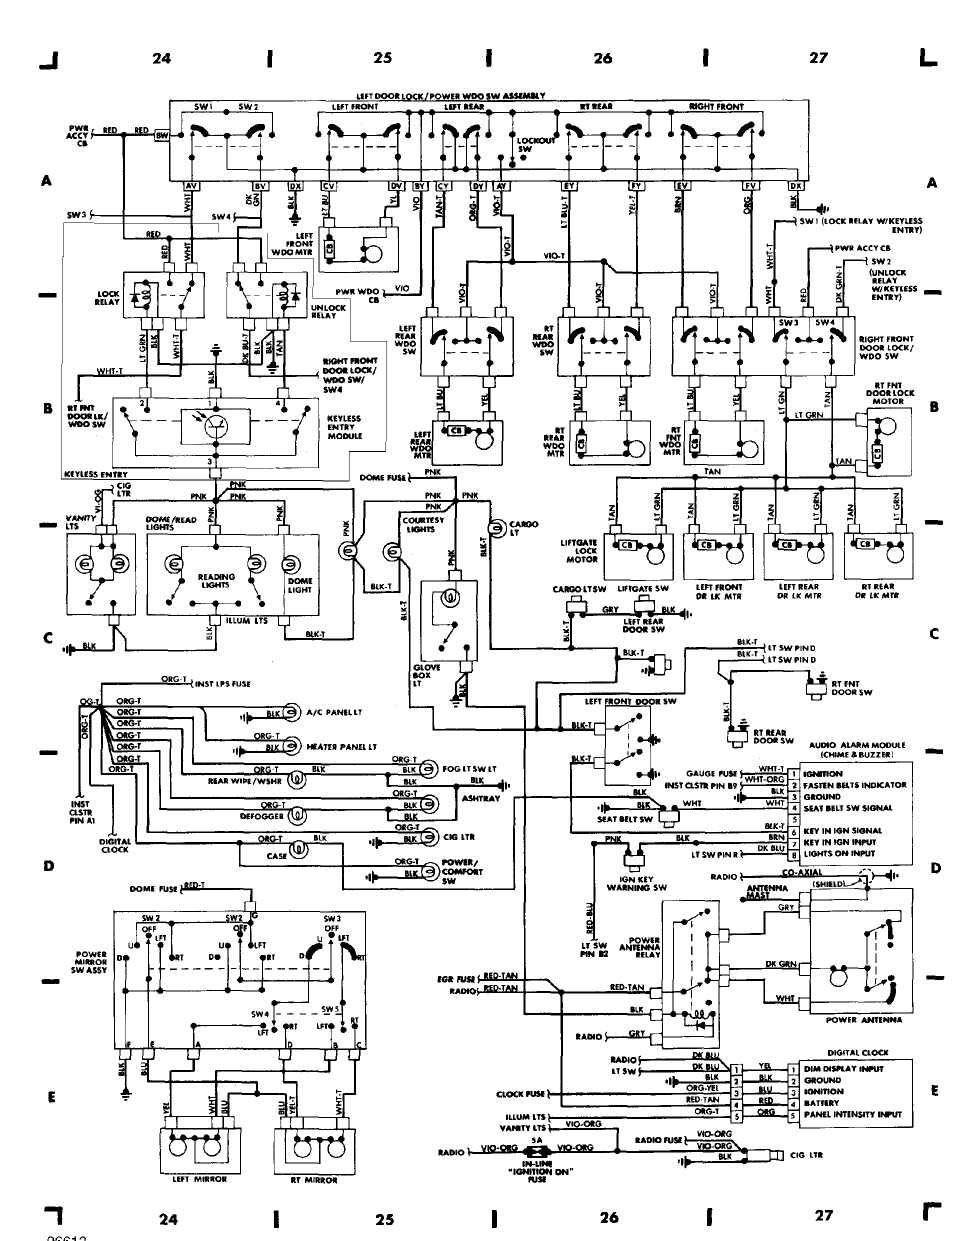 wiring_diagrams_html_61f5e0ad wiring diagrams 1984 1991 jeep cherokee (xj) jeep 1990 jeep cherokee ignition wiring diagram at gsmx.co